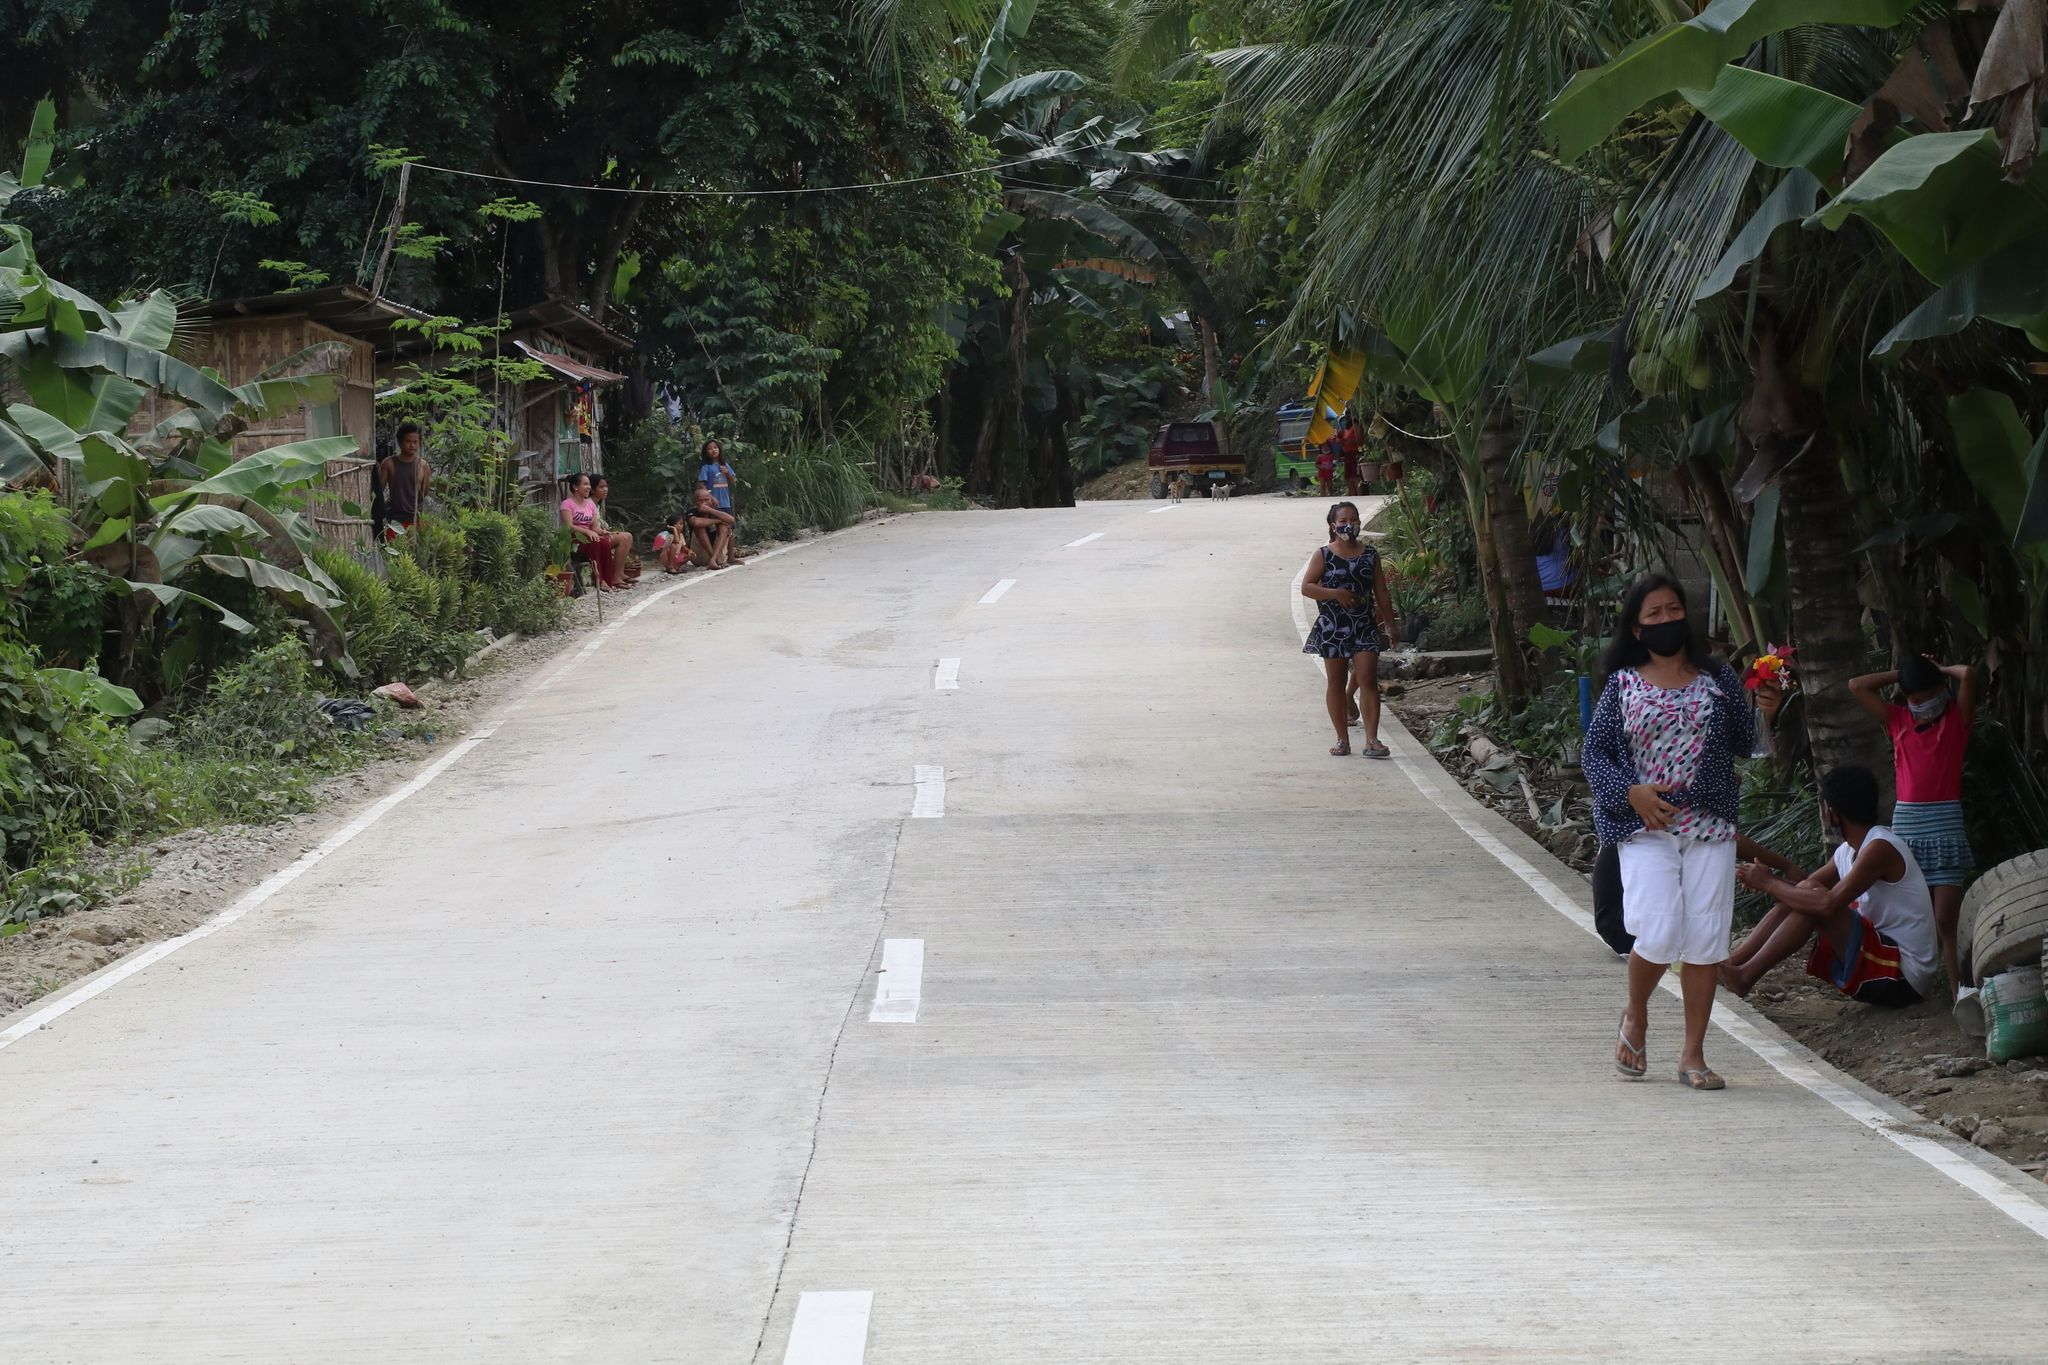 More infra, health programs so Cebuanos can feel 'richest province' tag